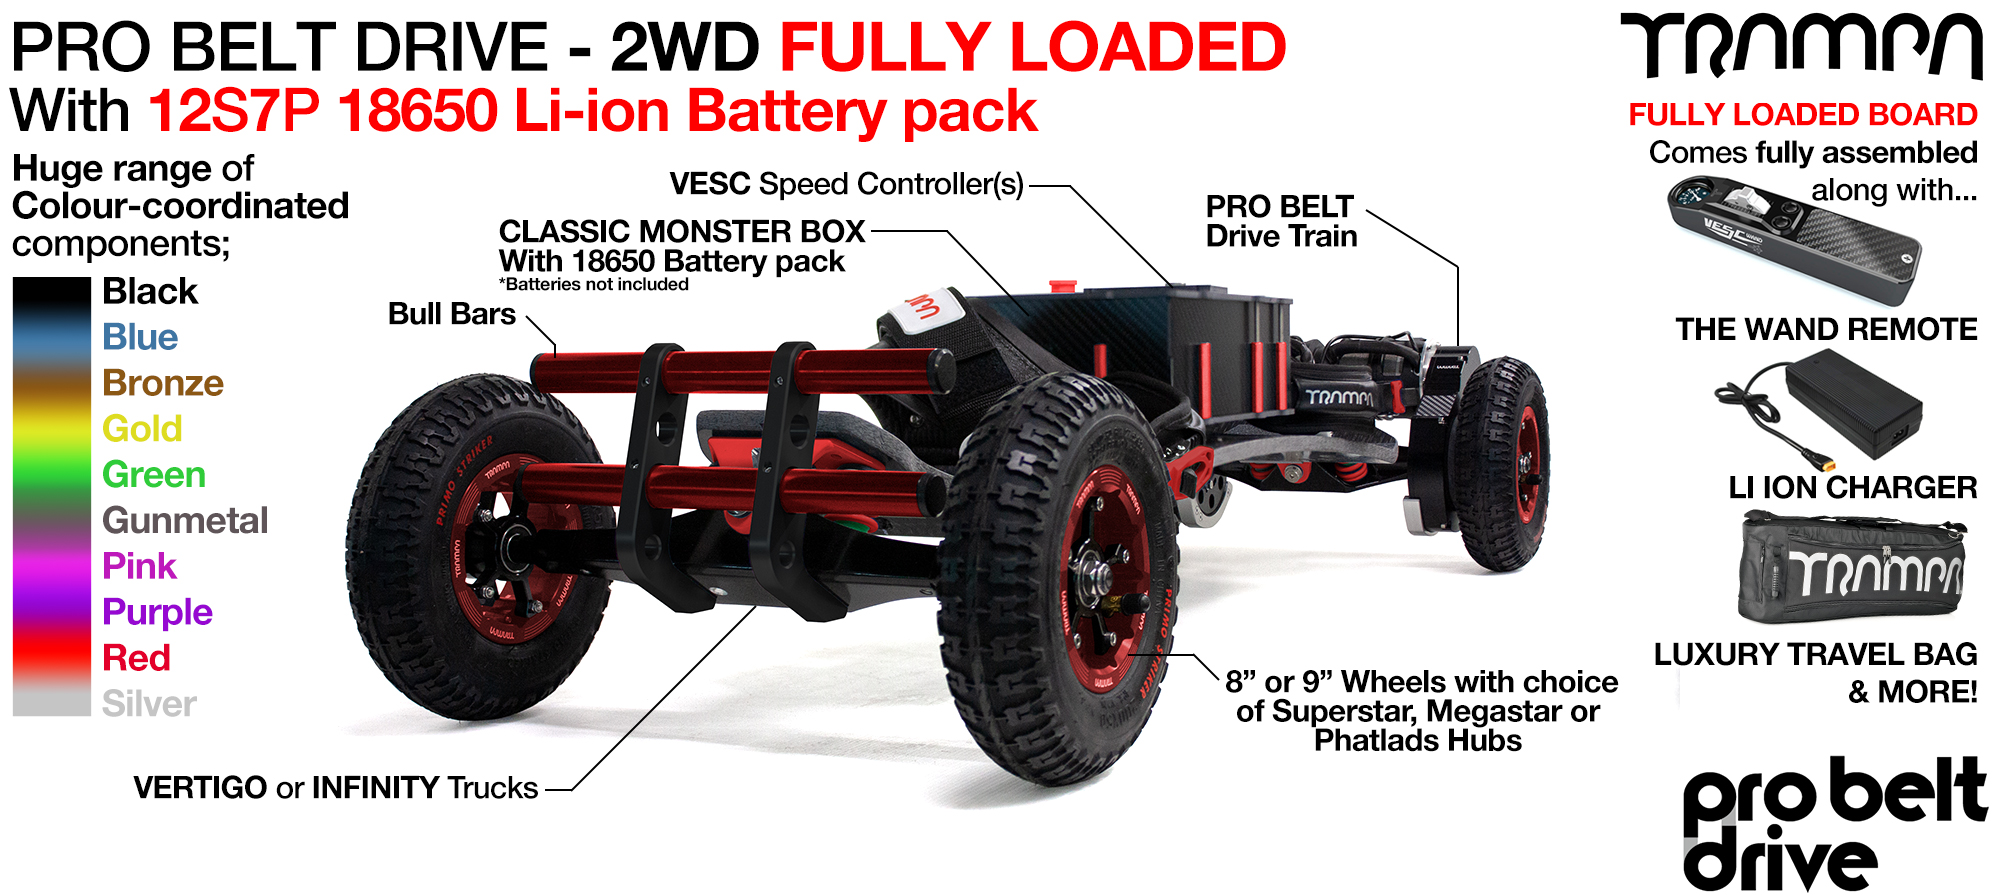 PRO Belt Drive Electric mountainboard FULLY LOADED with 9 INCH MEGASTARS on rear 8 INCH Megastars on front, Mud-Plugger Tyres all round supplied with The WAND, ULTRAPOWER Charger & Bull Bars as standard!!